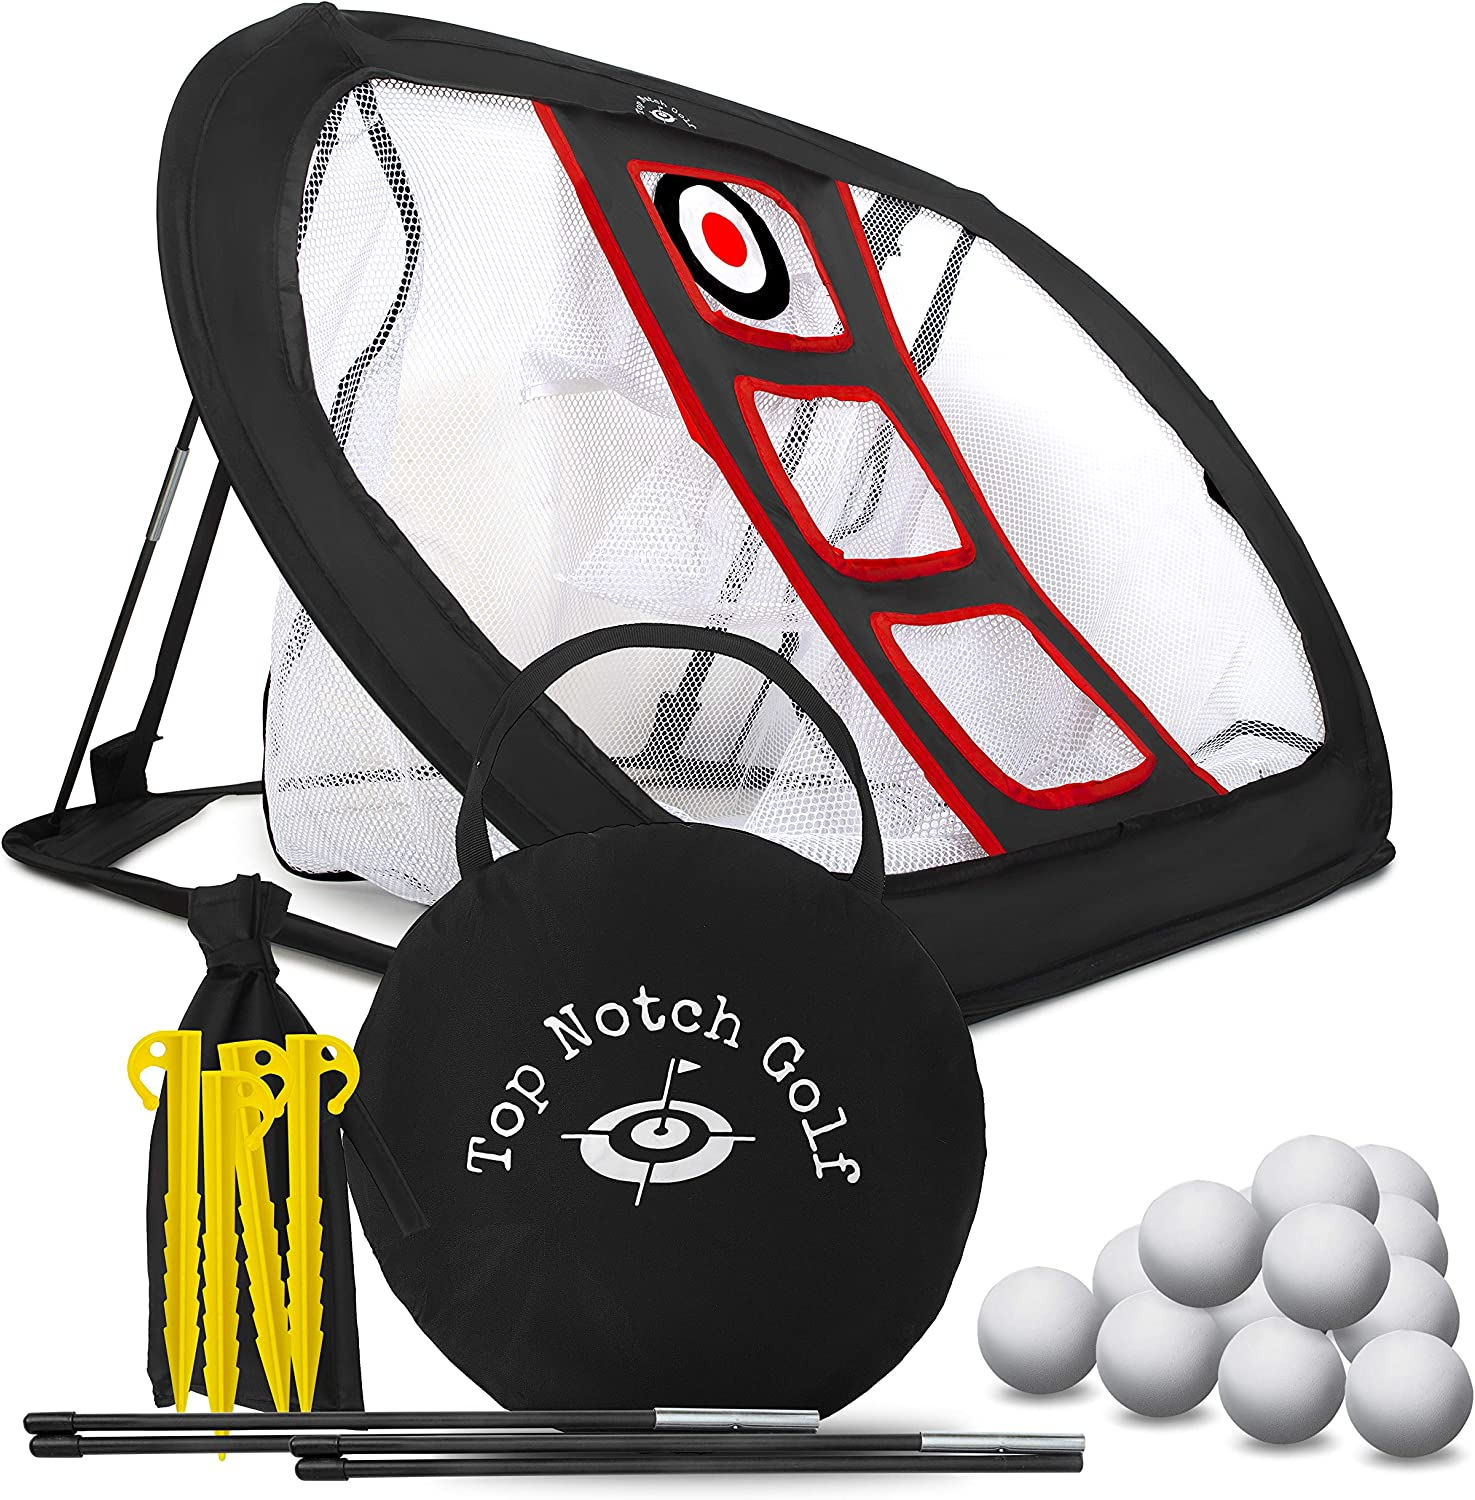 Golf Chipping Net with 12 Foam Practice Balls – Collapsible Golfing Target for Indoor Outdoor Use – Portable Training Aid to Practice in Backyard or Office Improve Accuracy and Challenge Friends